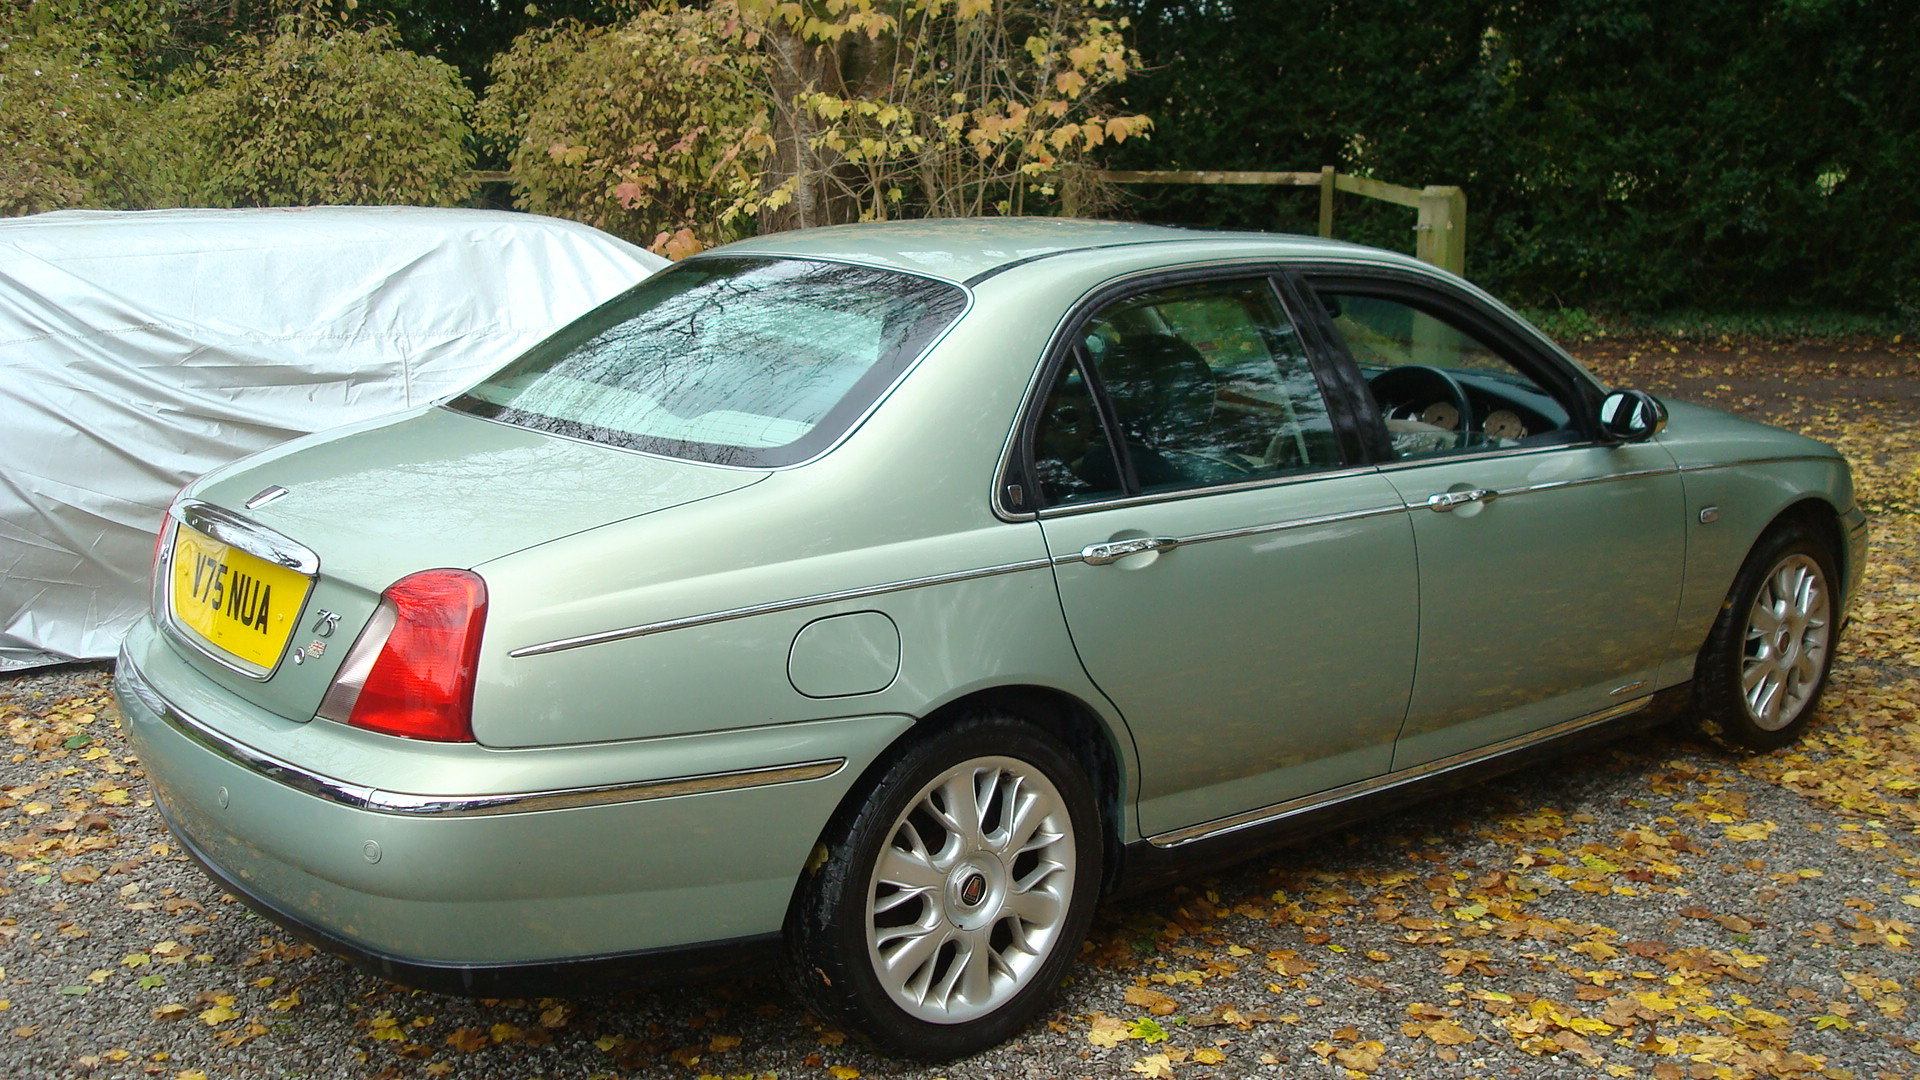 1999 Rover 75 2.5 V6 Connoisseur For Sale (picture 4 of 6)